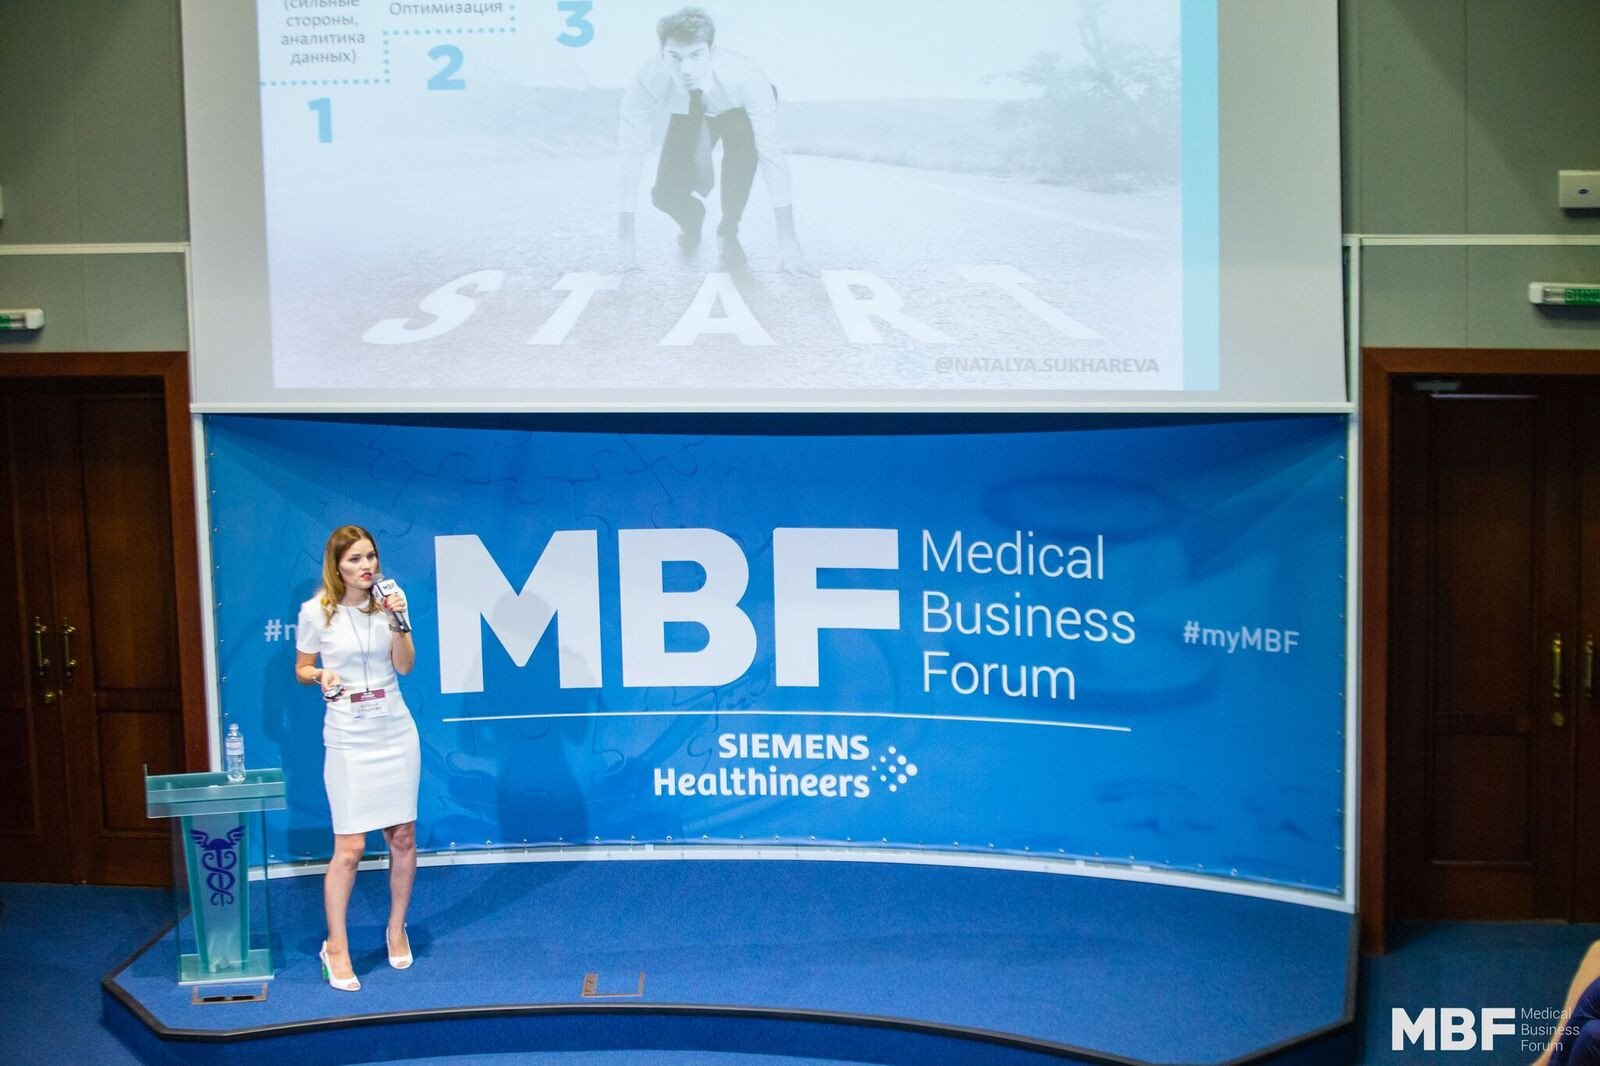 Medical Business Forum